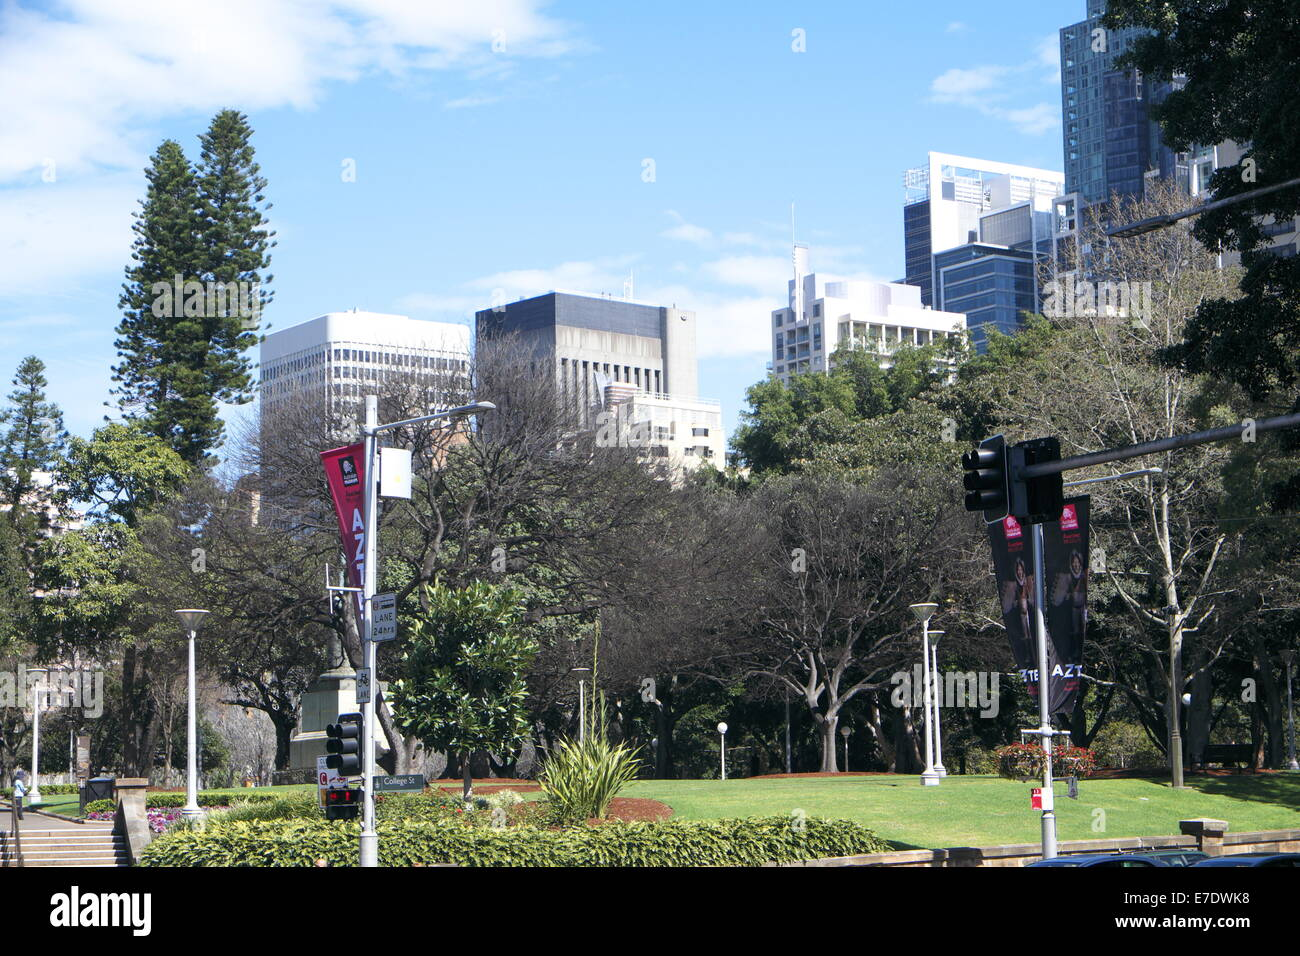 hyde park in sydney central business district,australia - Stock Image